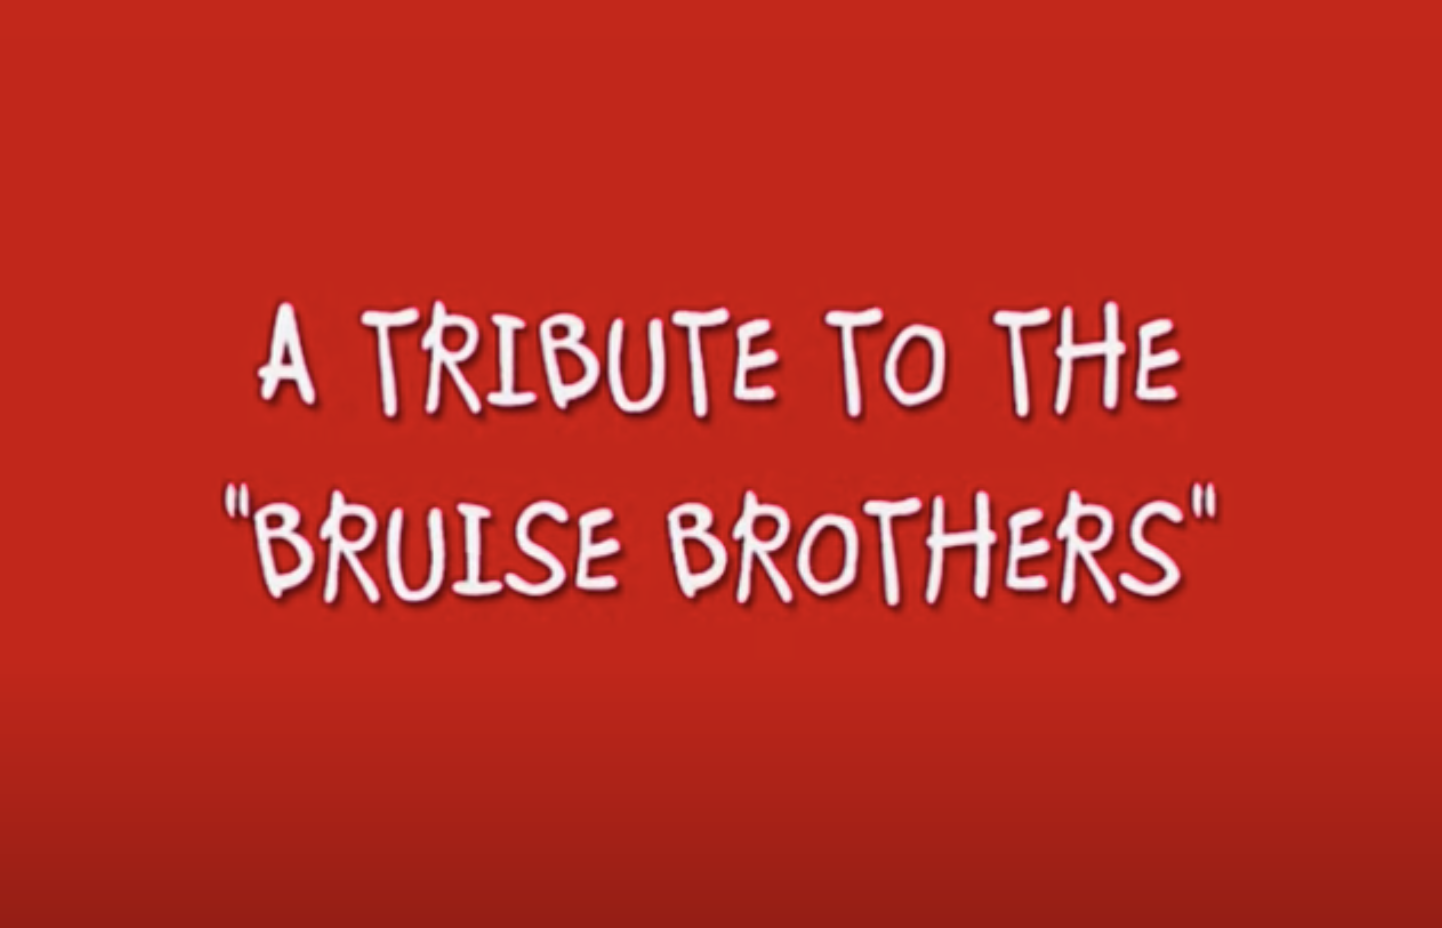 The Bruise Brothers: Best of Bob Probert and Joey Kocur fights [Video]